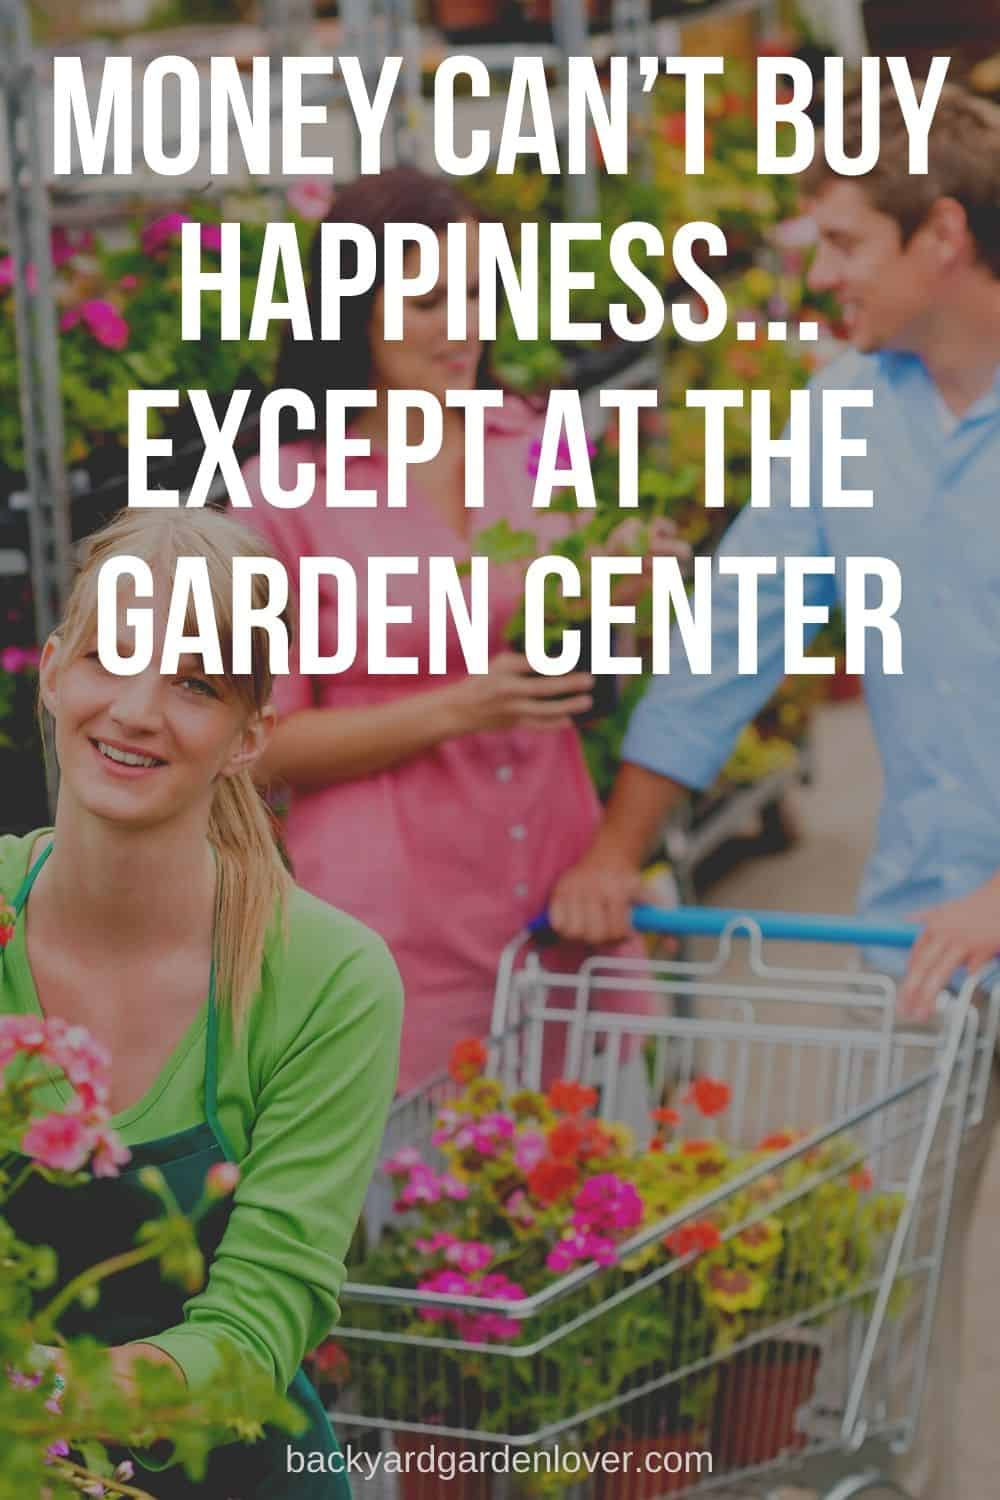 Money can't buy happiness. Except at the garden center.